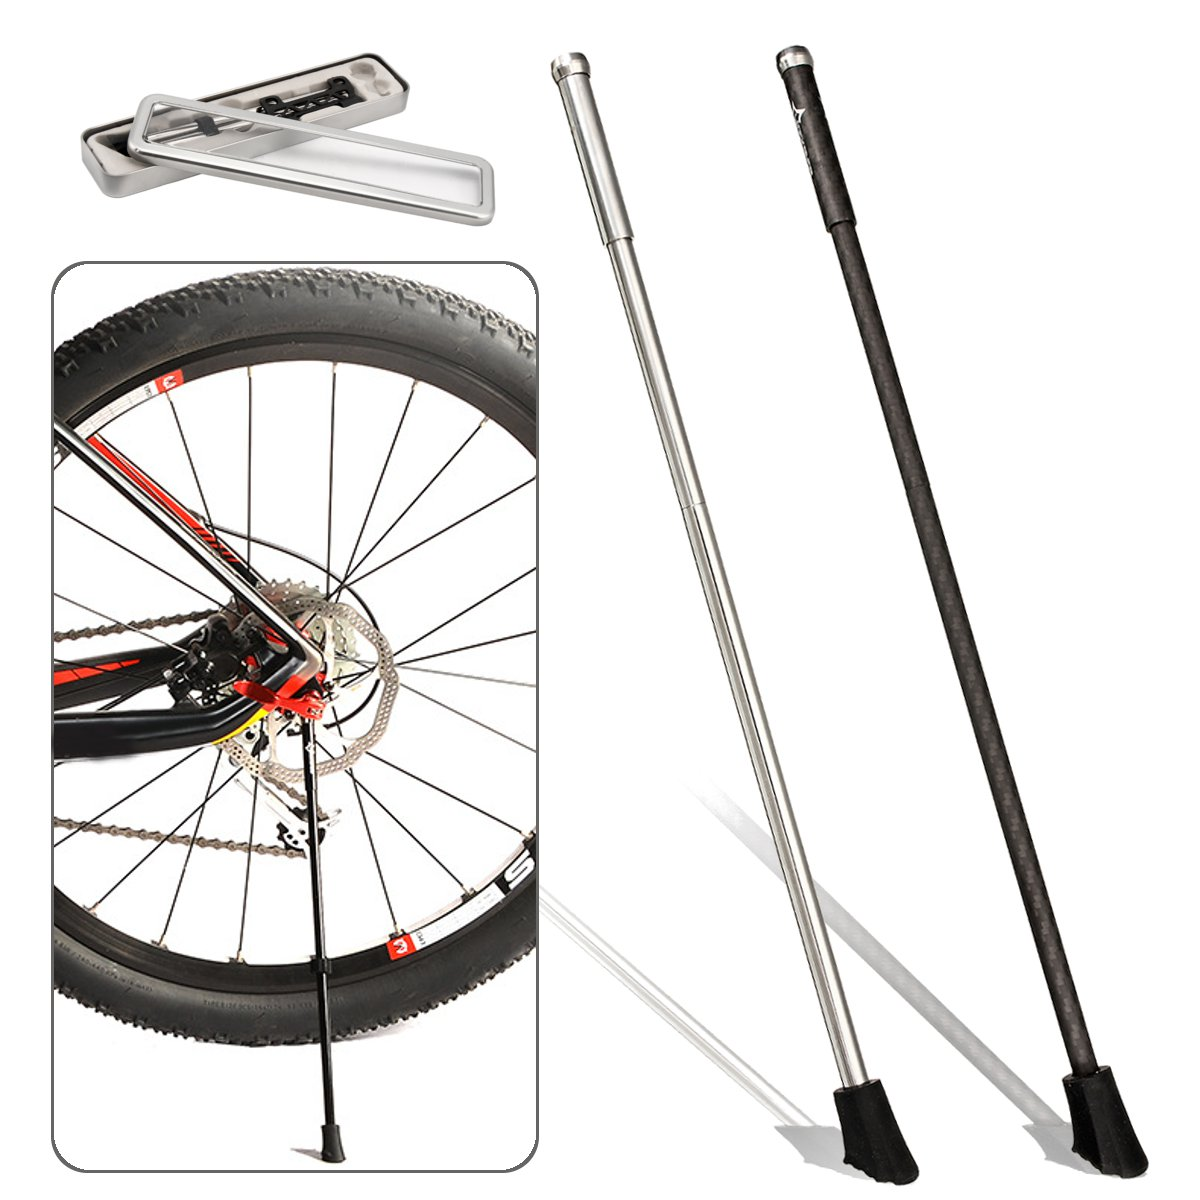 BIKIGHT Carbon Fiber/ Stainless Steel Cycling Bike Kickstand Road Bicycle Portable Quick Release Stand